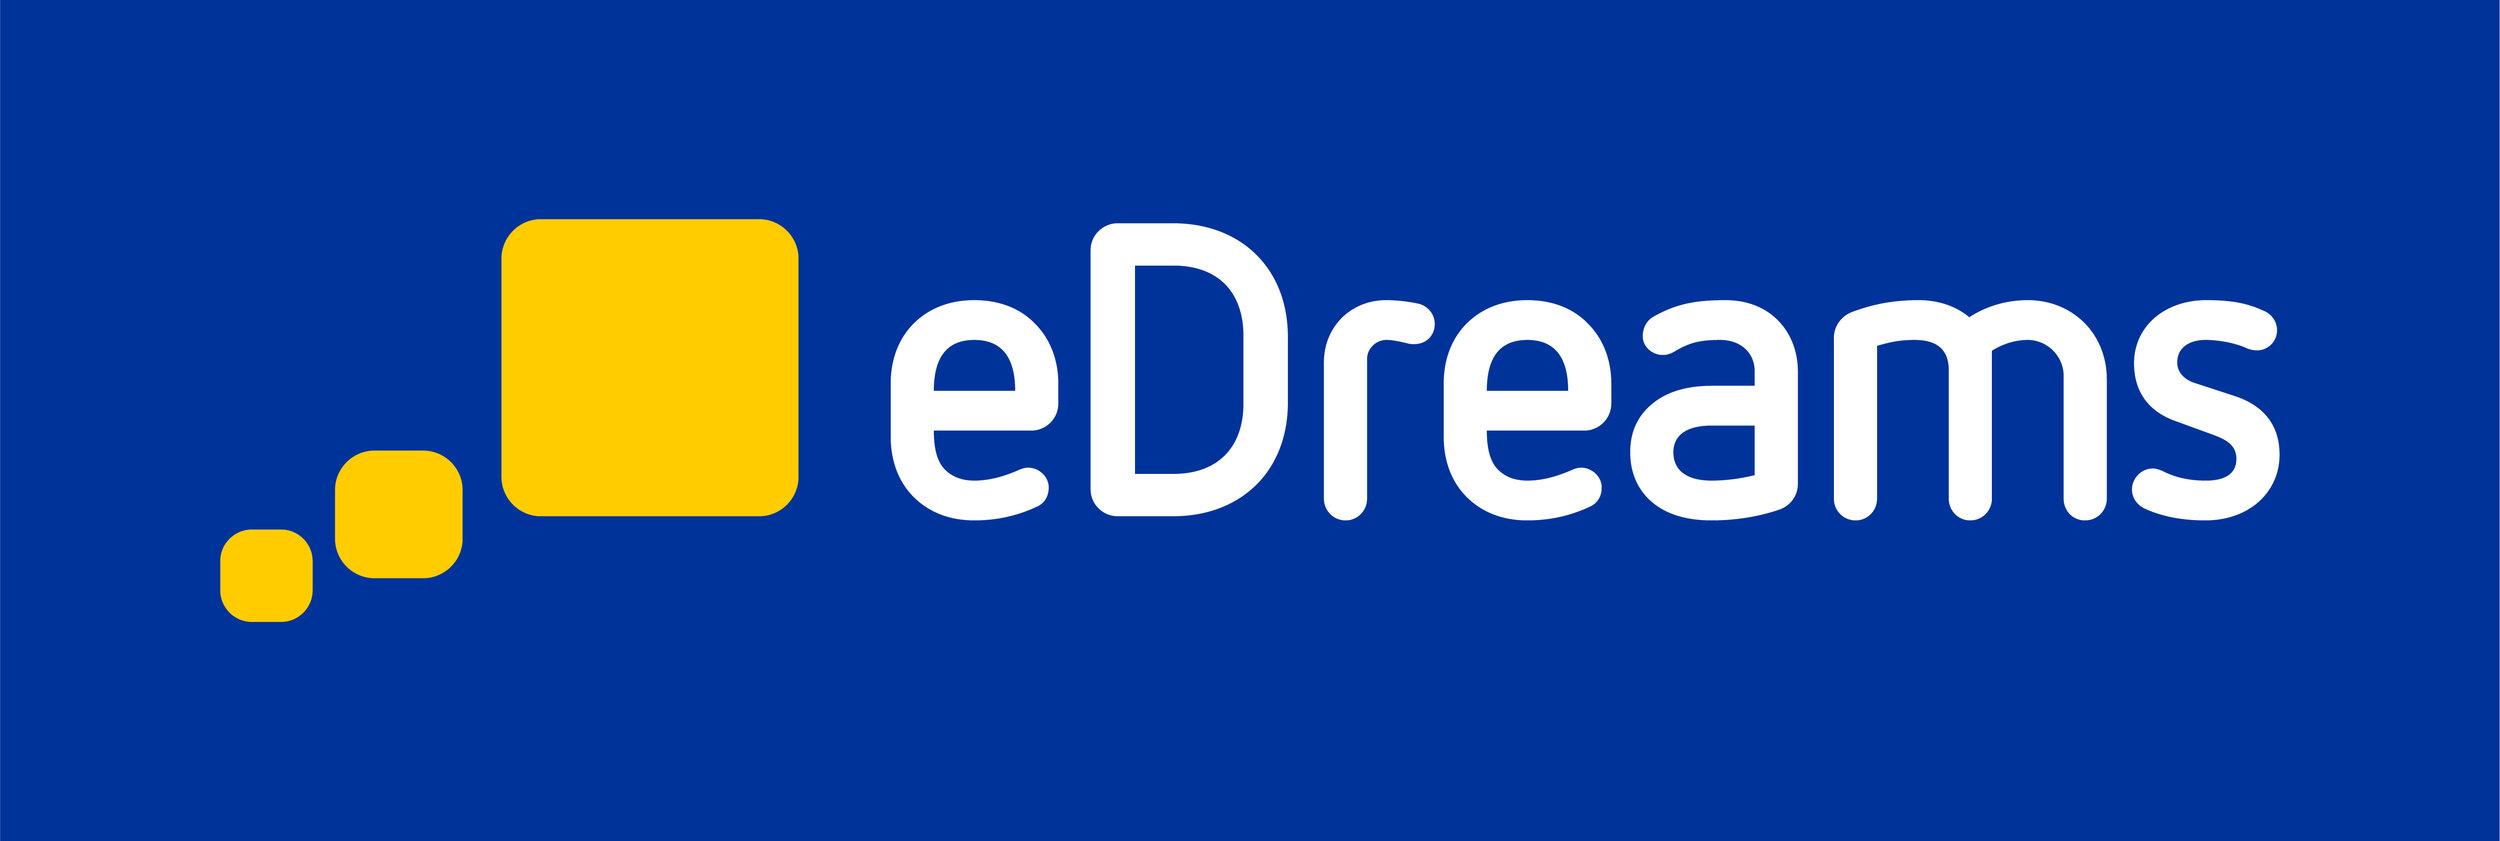 Logo_eDreams_negative_RGB.jpg